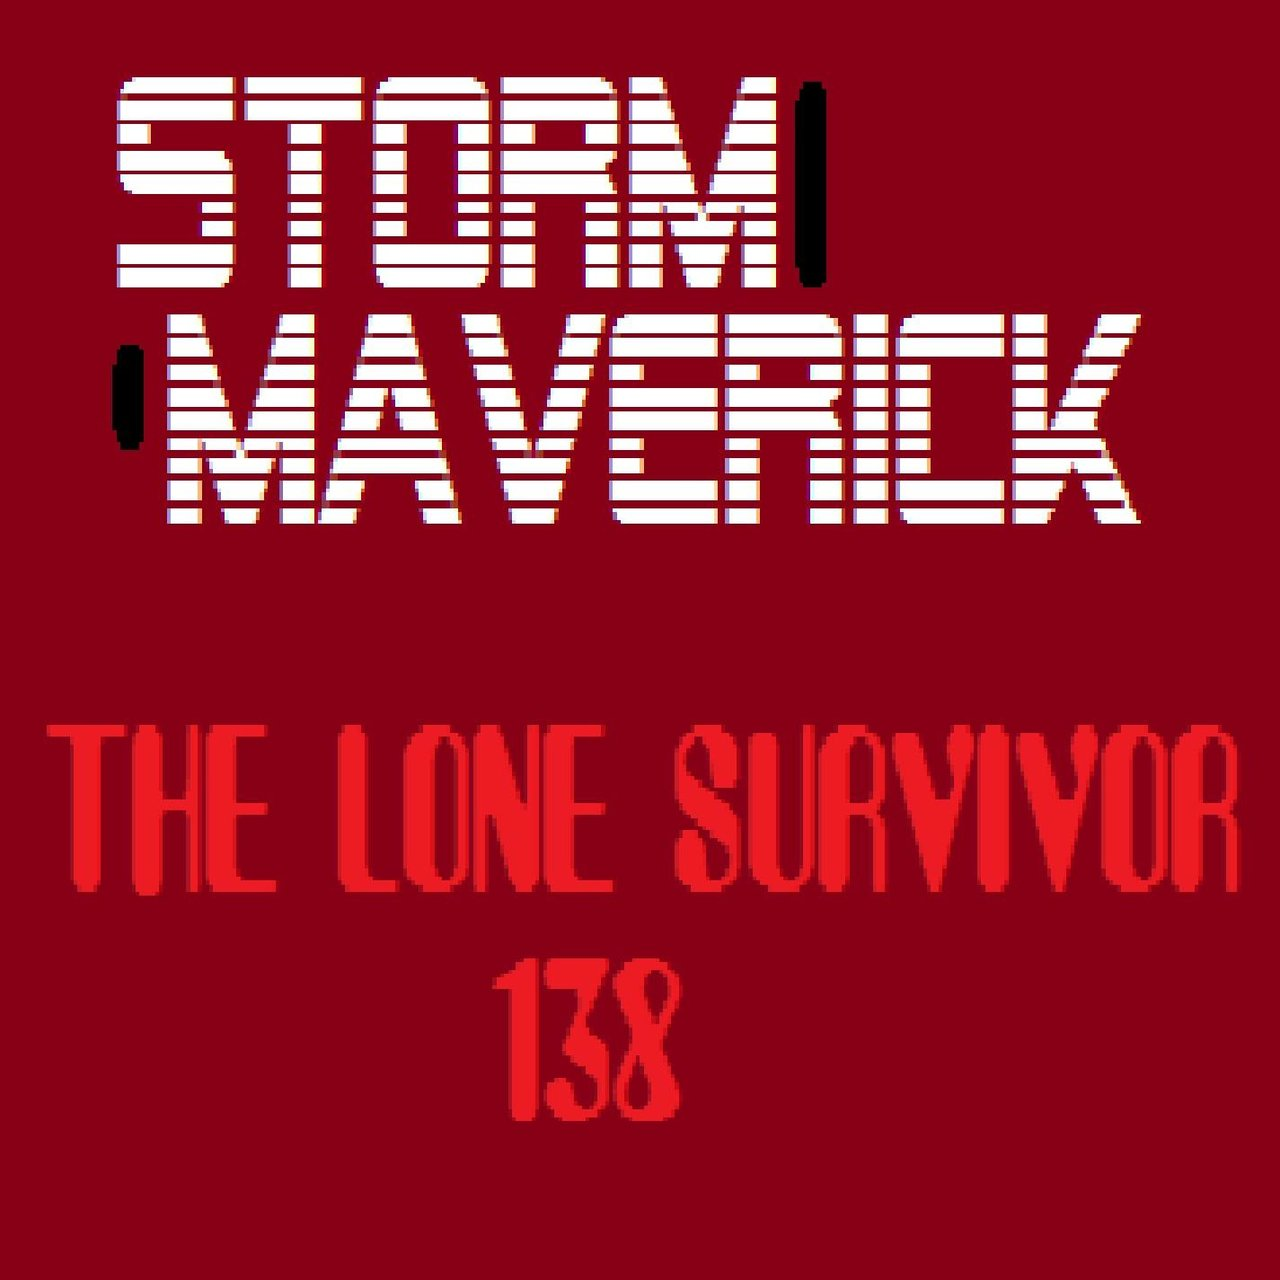 The Lone Survivor 138